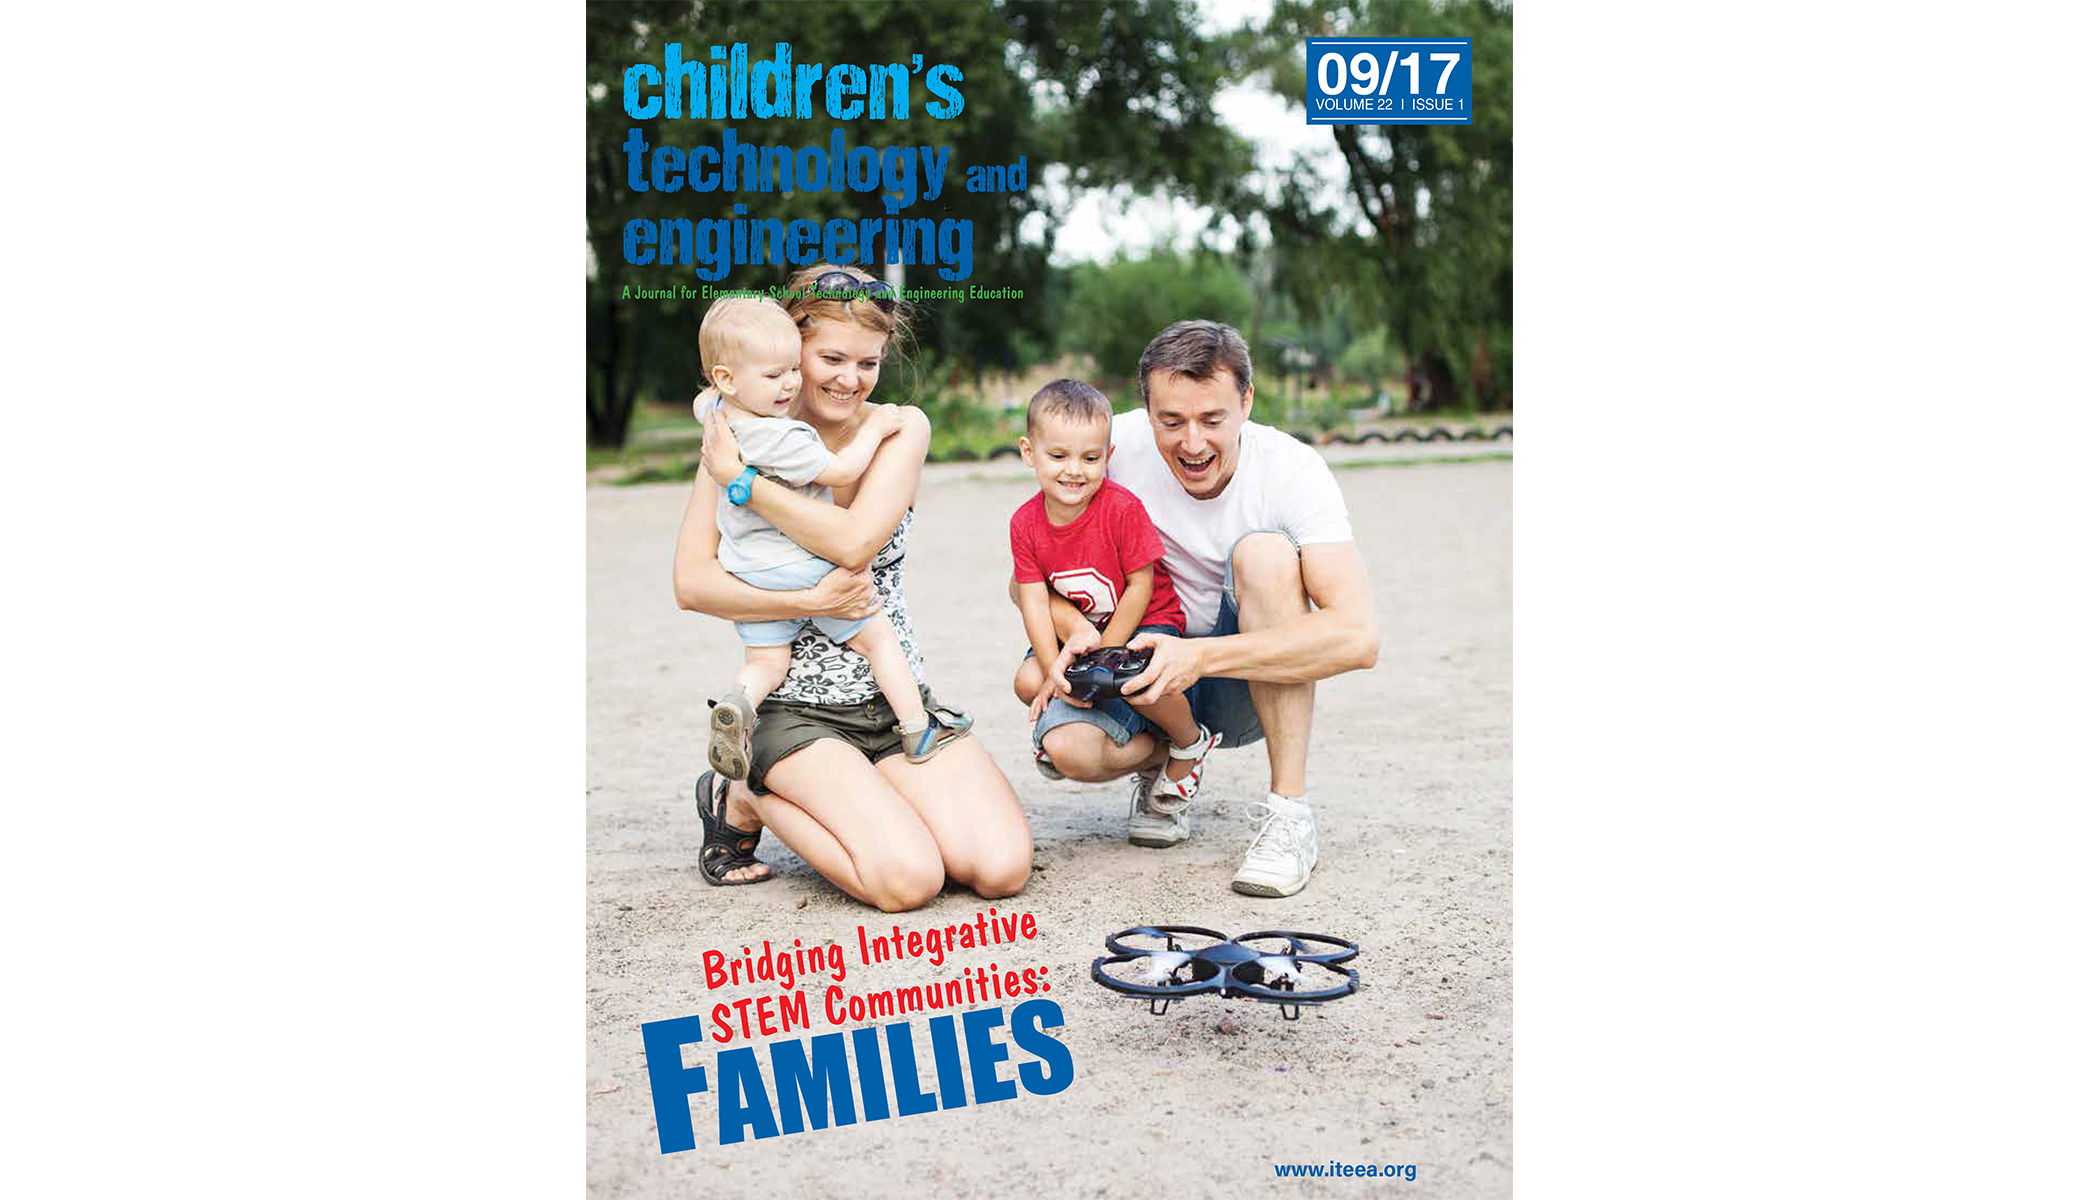 Children's Technology and Engineering: What's inside the September 2017 Issue?